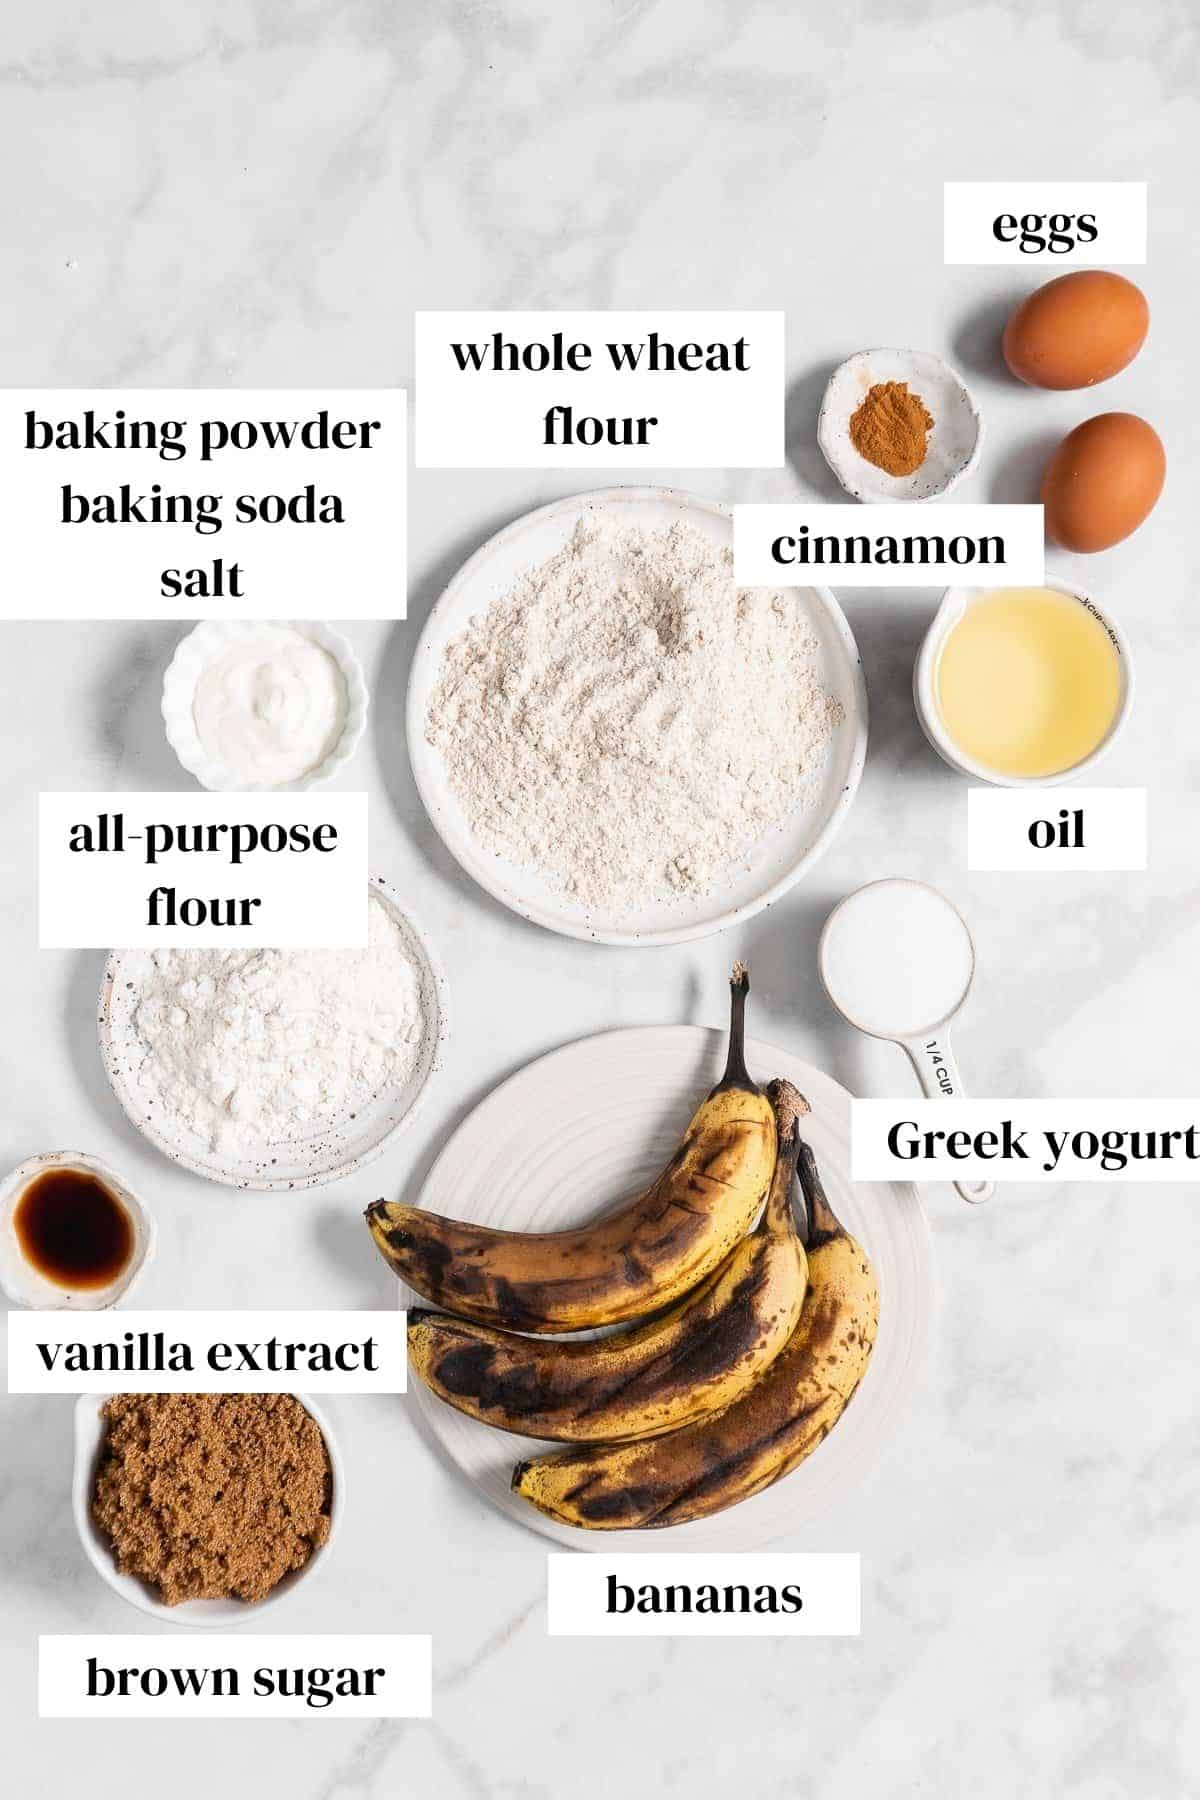 eggs, cinnamon, oil, yogurt, whole wheat flour, all purpose flour, bananas, vanilla, brown sugar on a marble surface.